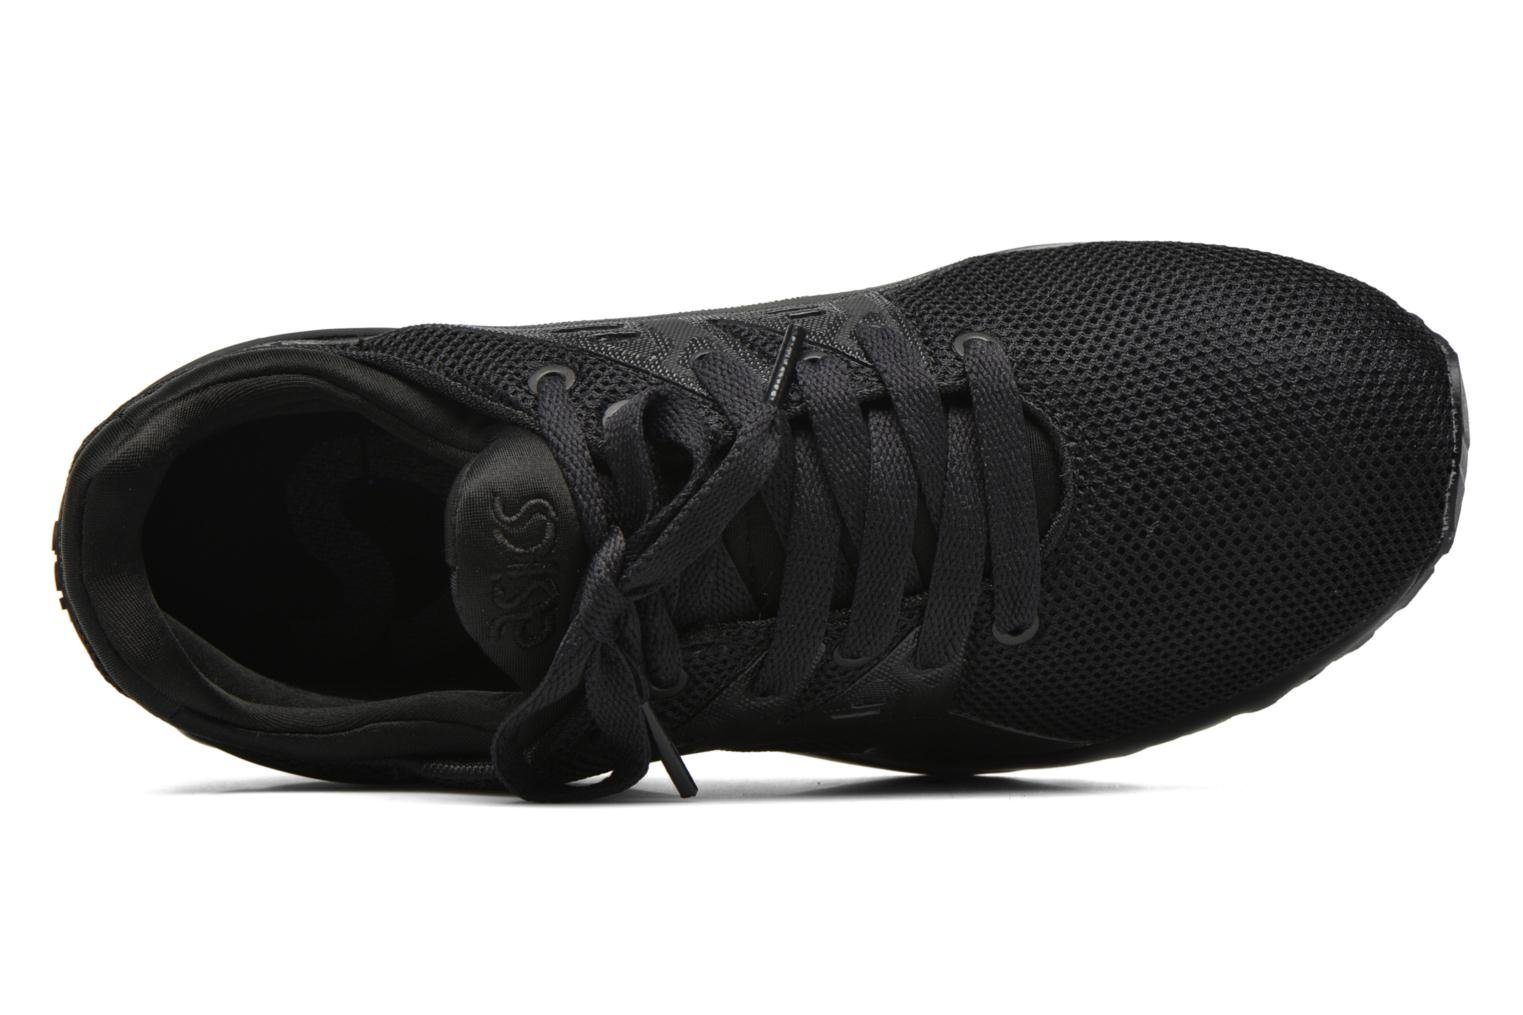 Gel-Kayano Trainer Evo Black1/Black